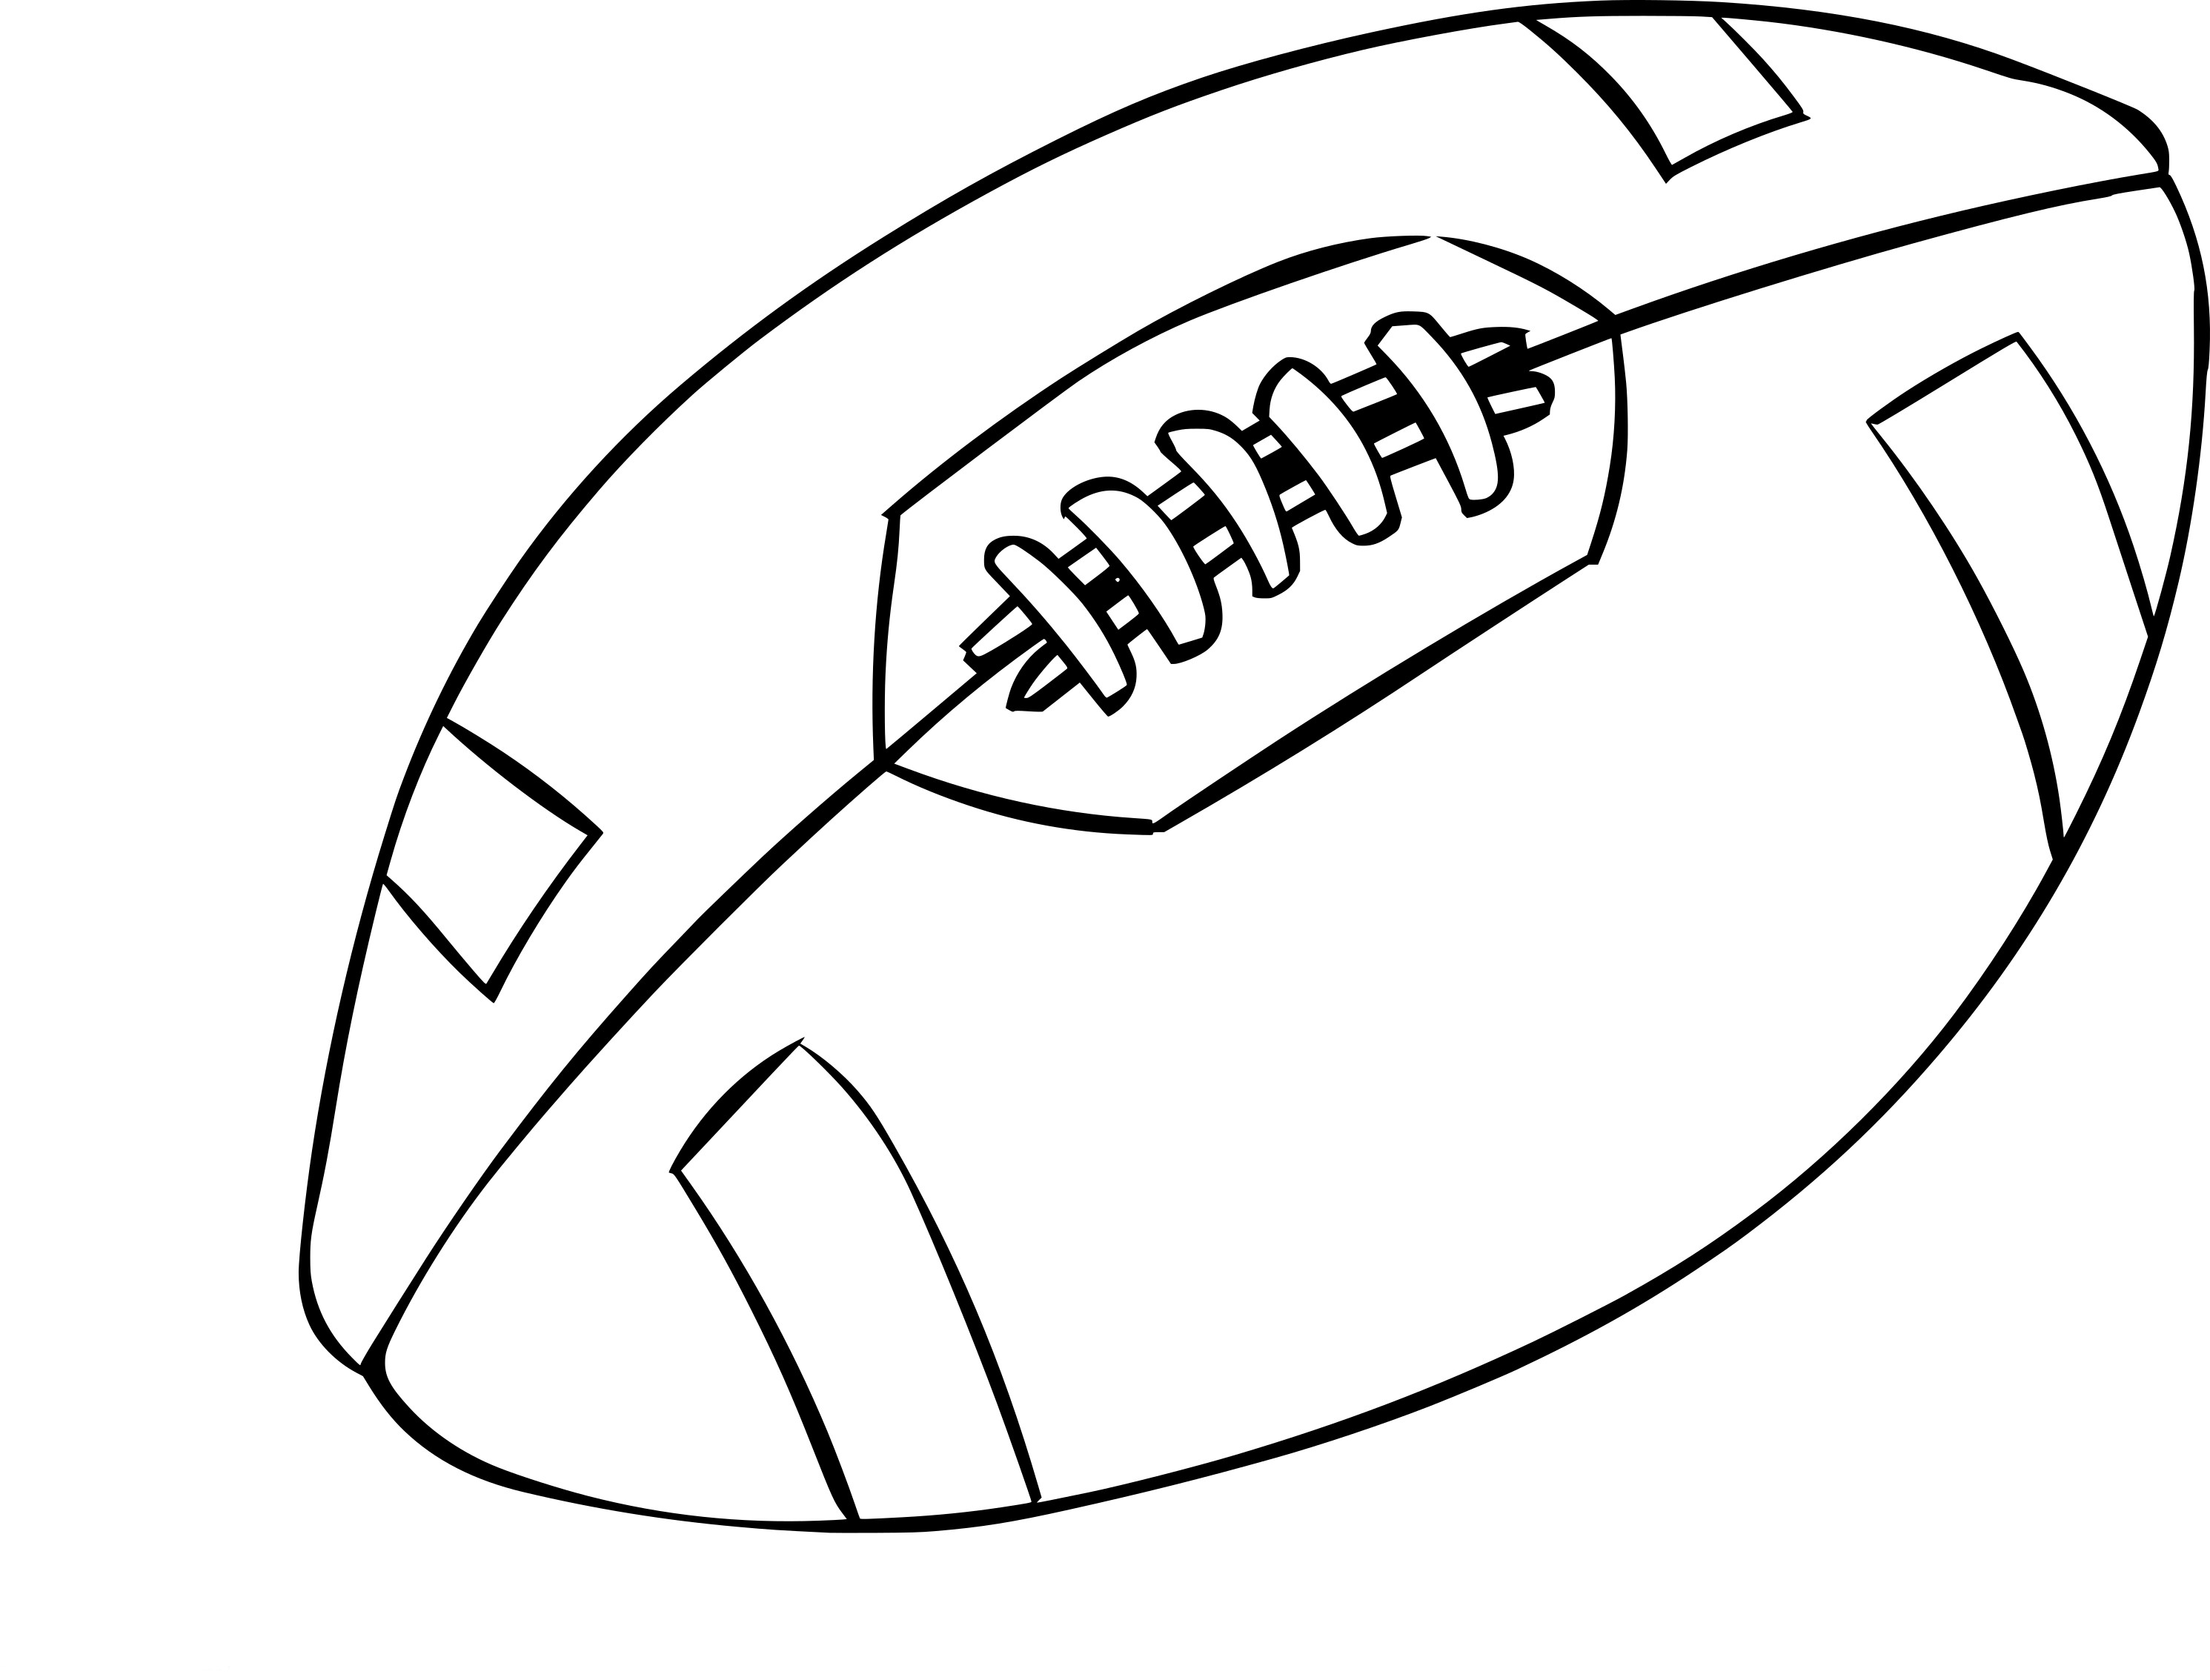 Coloriage Football Americain.Coloriage Football Americain Dessin A Imprimer Sur Coloriages Info